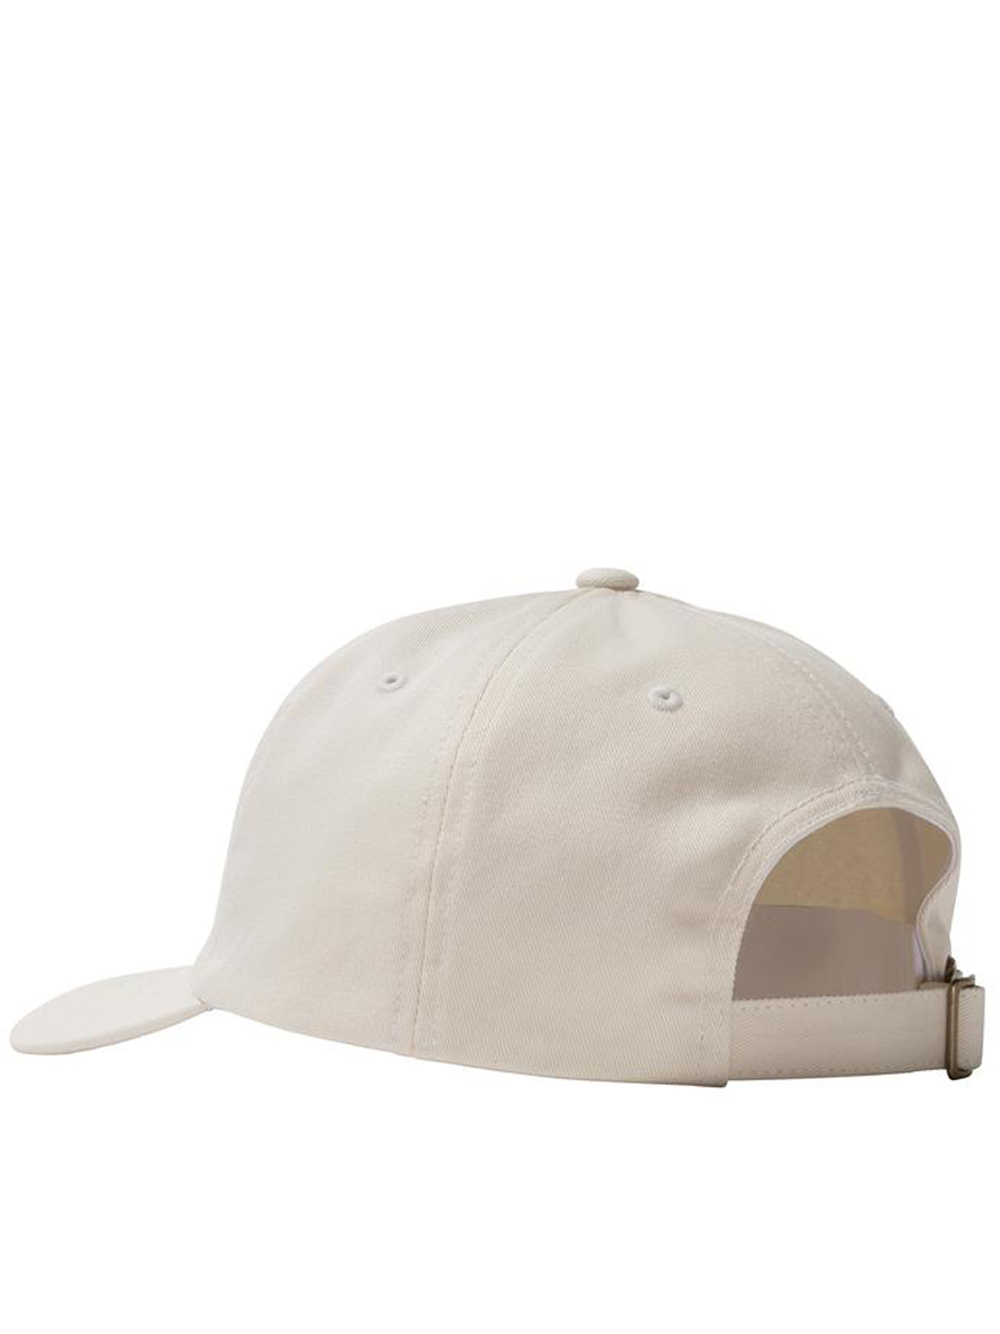 stock low cap unisex natural in cotton STUSSY   Hats   131982NATURAL